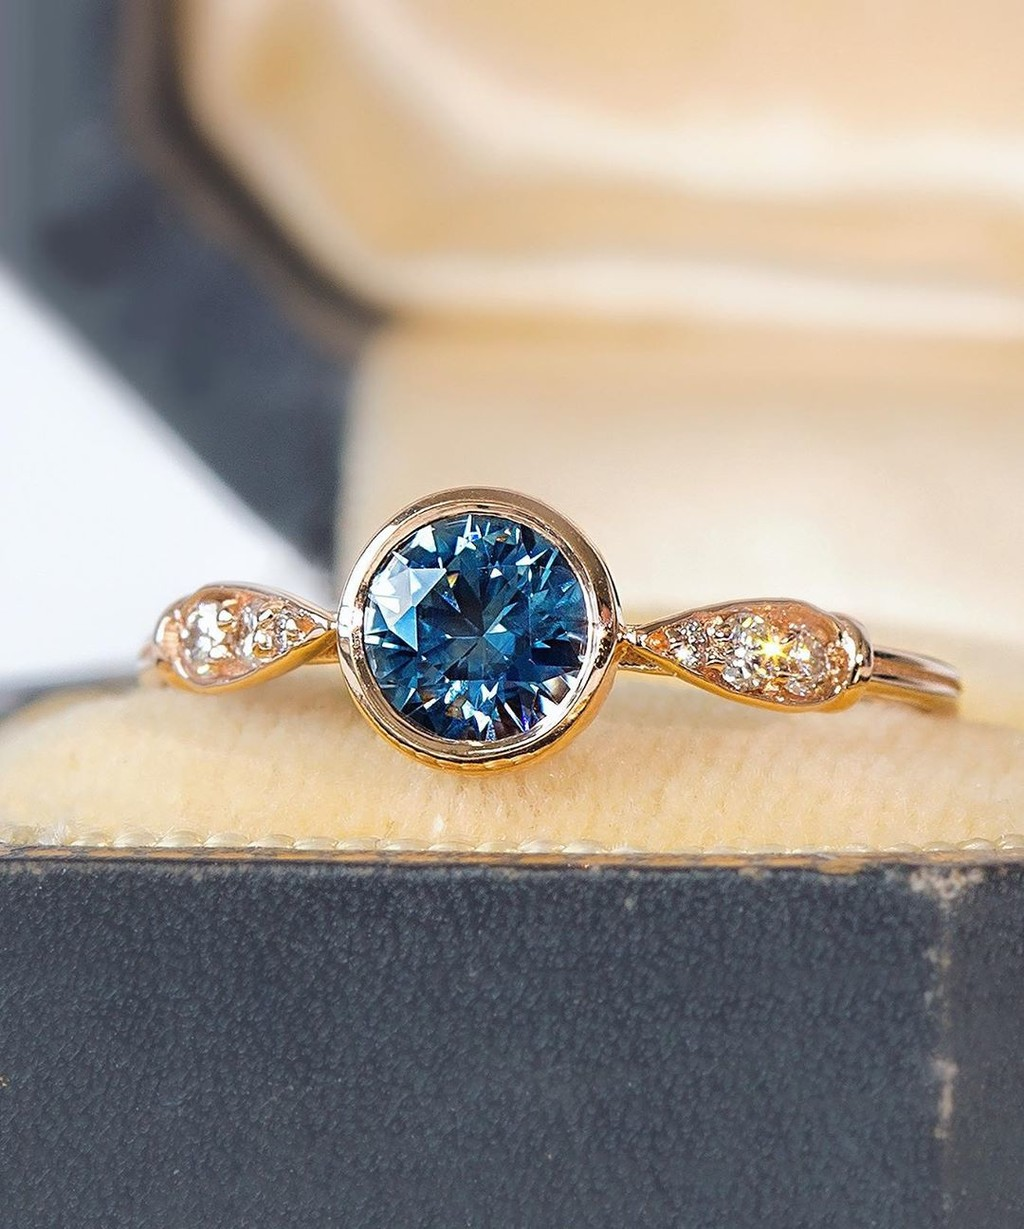 💙 Describe this ring with a word beginning with the letter B